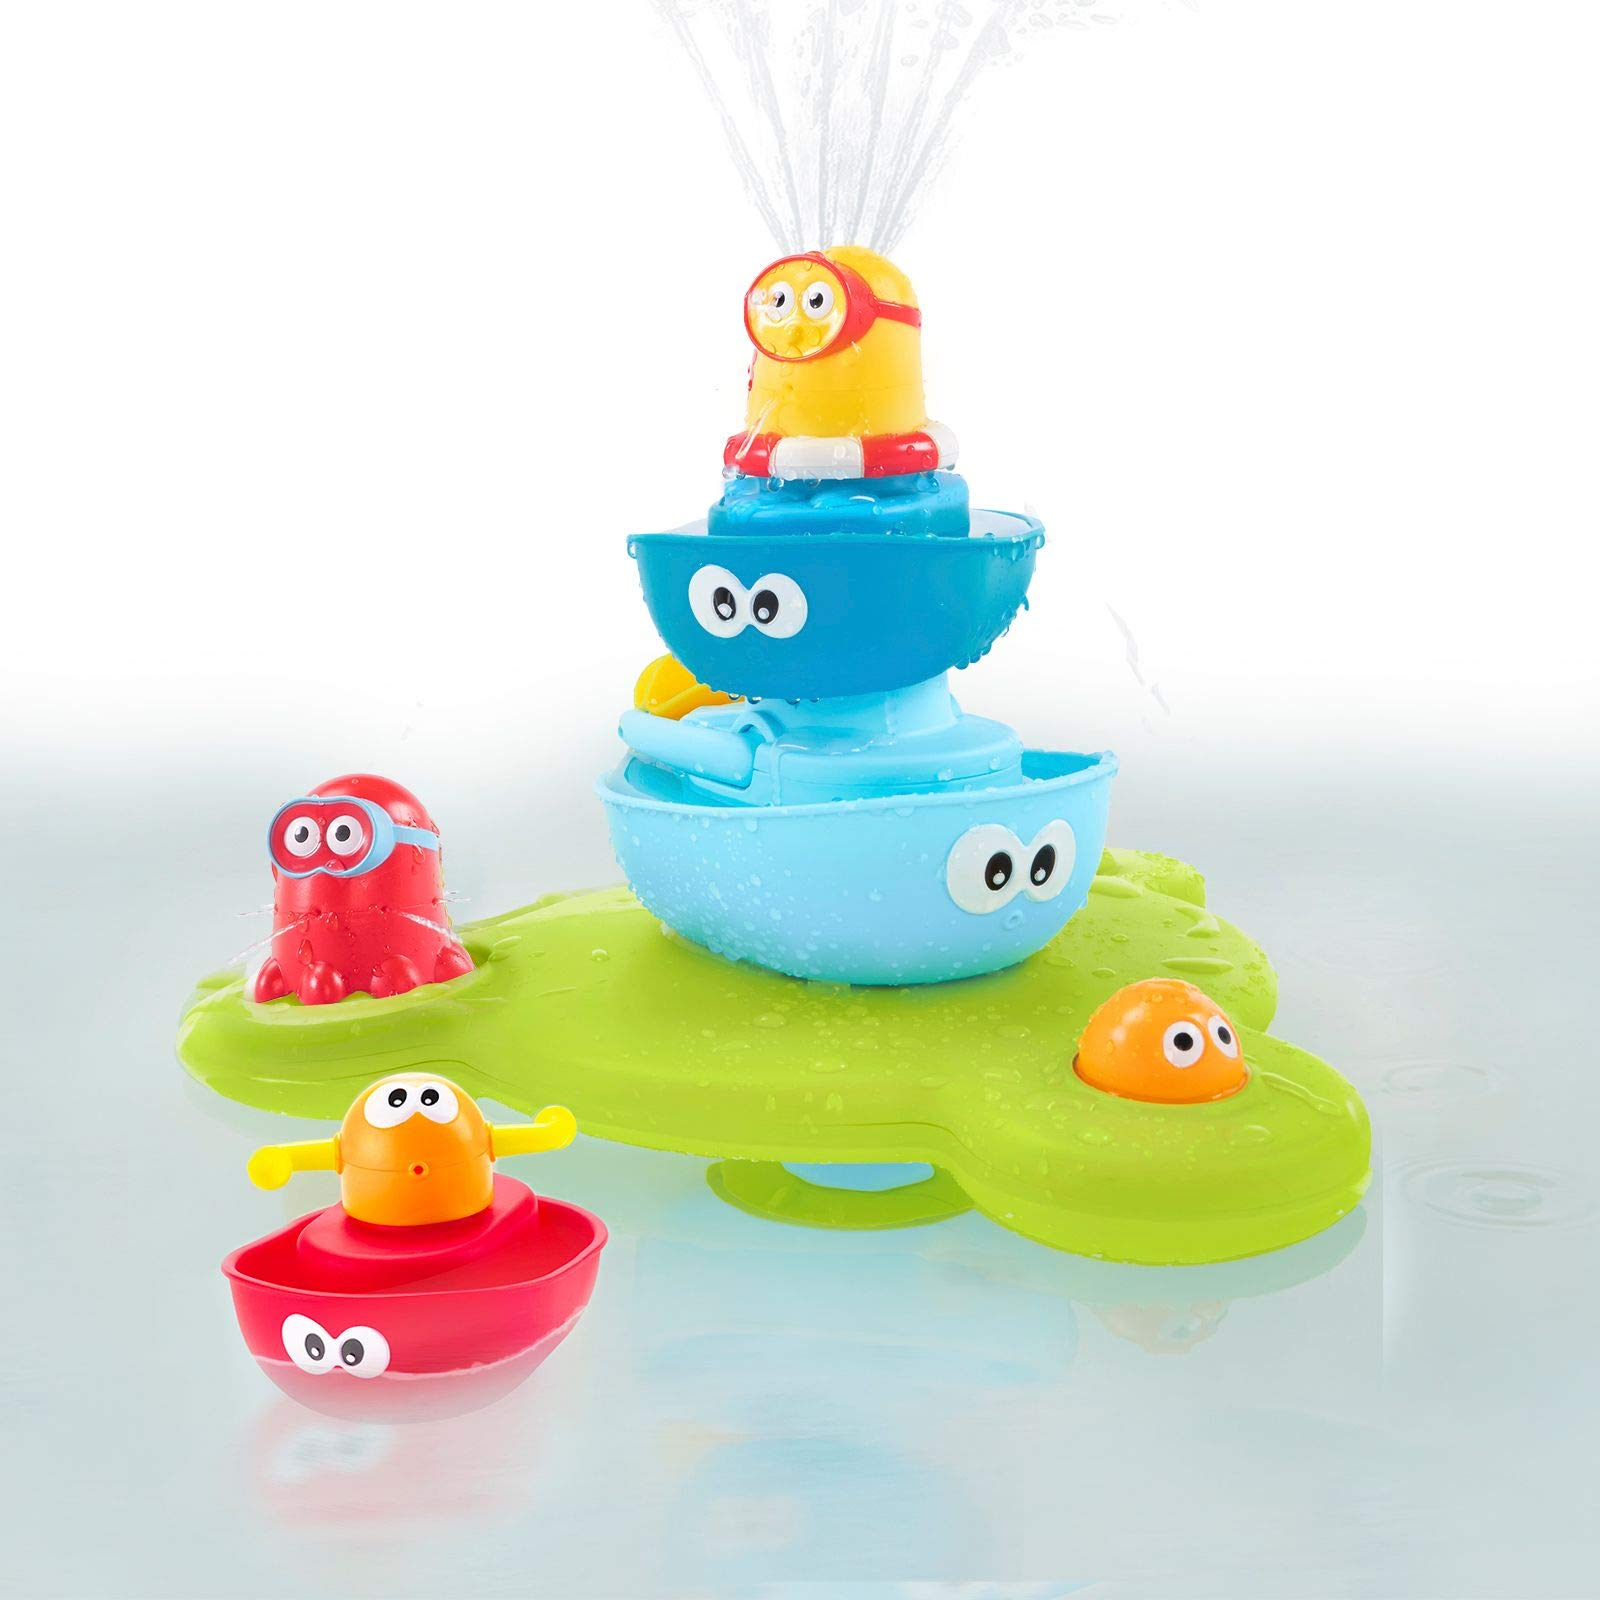 Yookidoo Baby Bath Toy (7 Piece Set) - Stack N' Spray Bathtub Fountain for Baby and Toddler - Magical Spray Fountain for Bathtime Fun